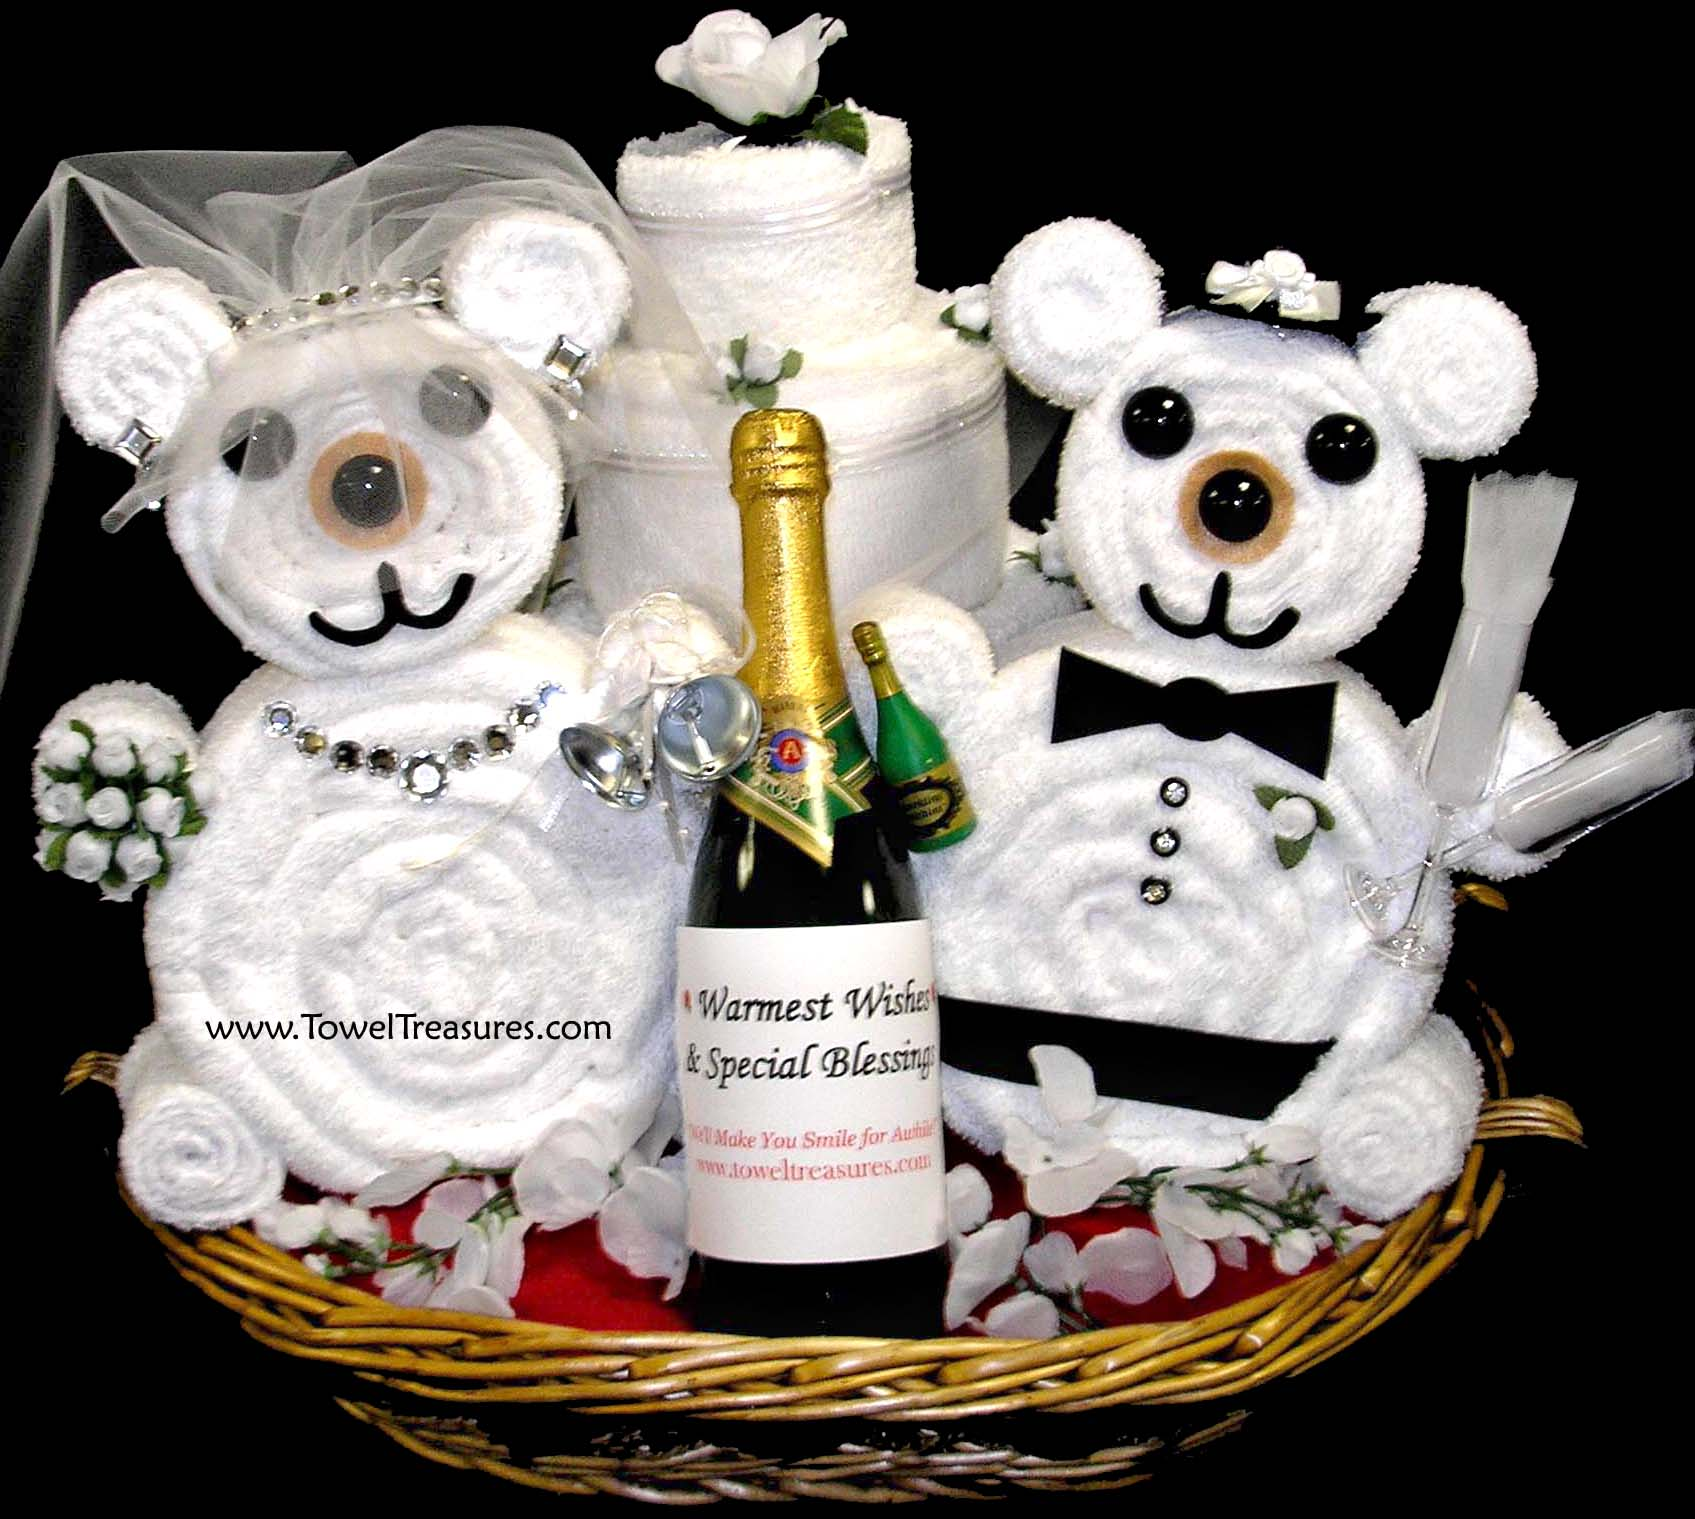 ... Photos - Great Wedding Shower Gift Basket Ideas Wedding Party Gallery